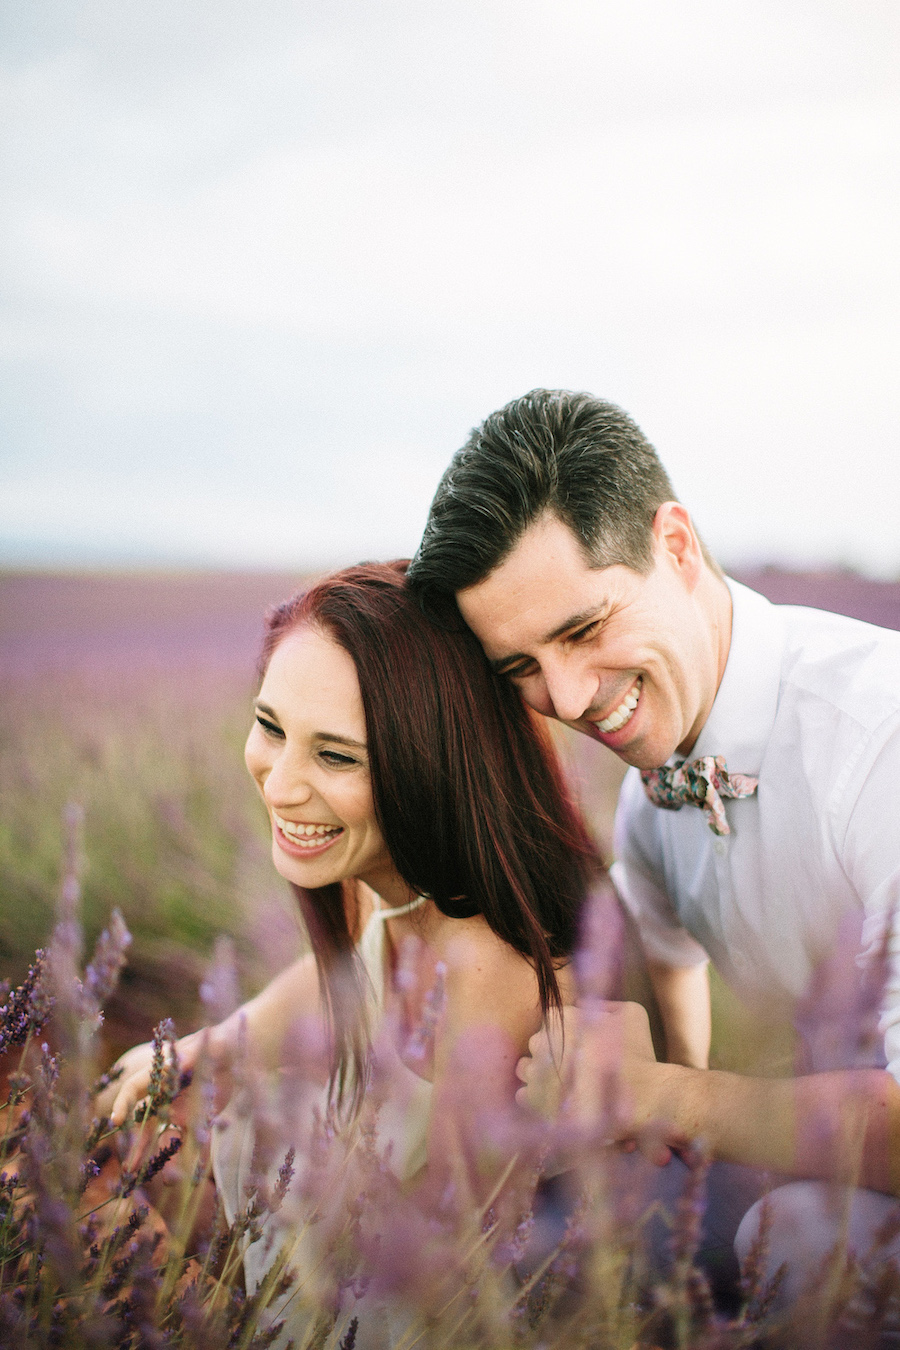 saya-photography-pre-wedding-provence-lavander-field-48.jpg